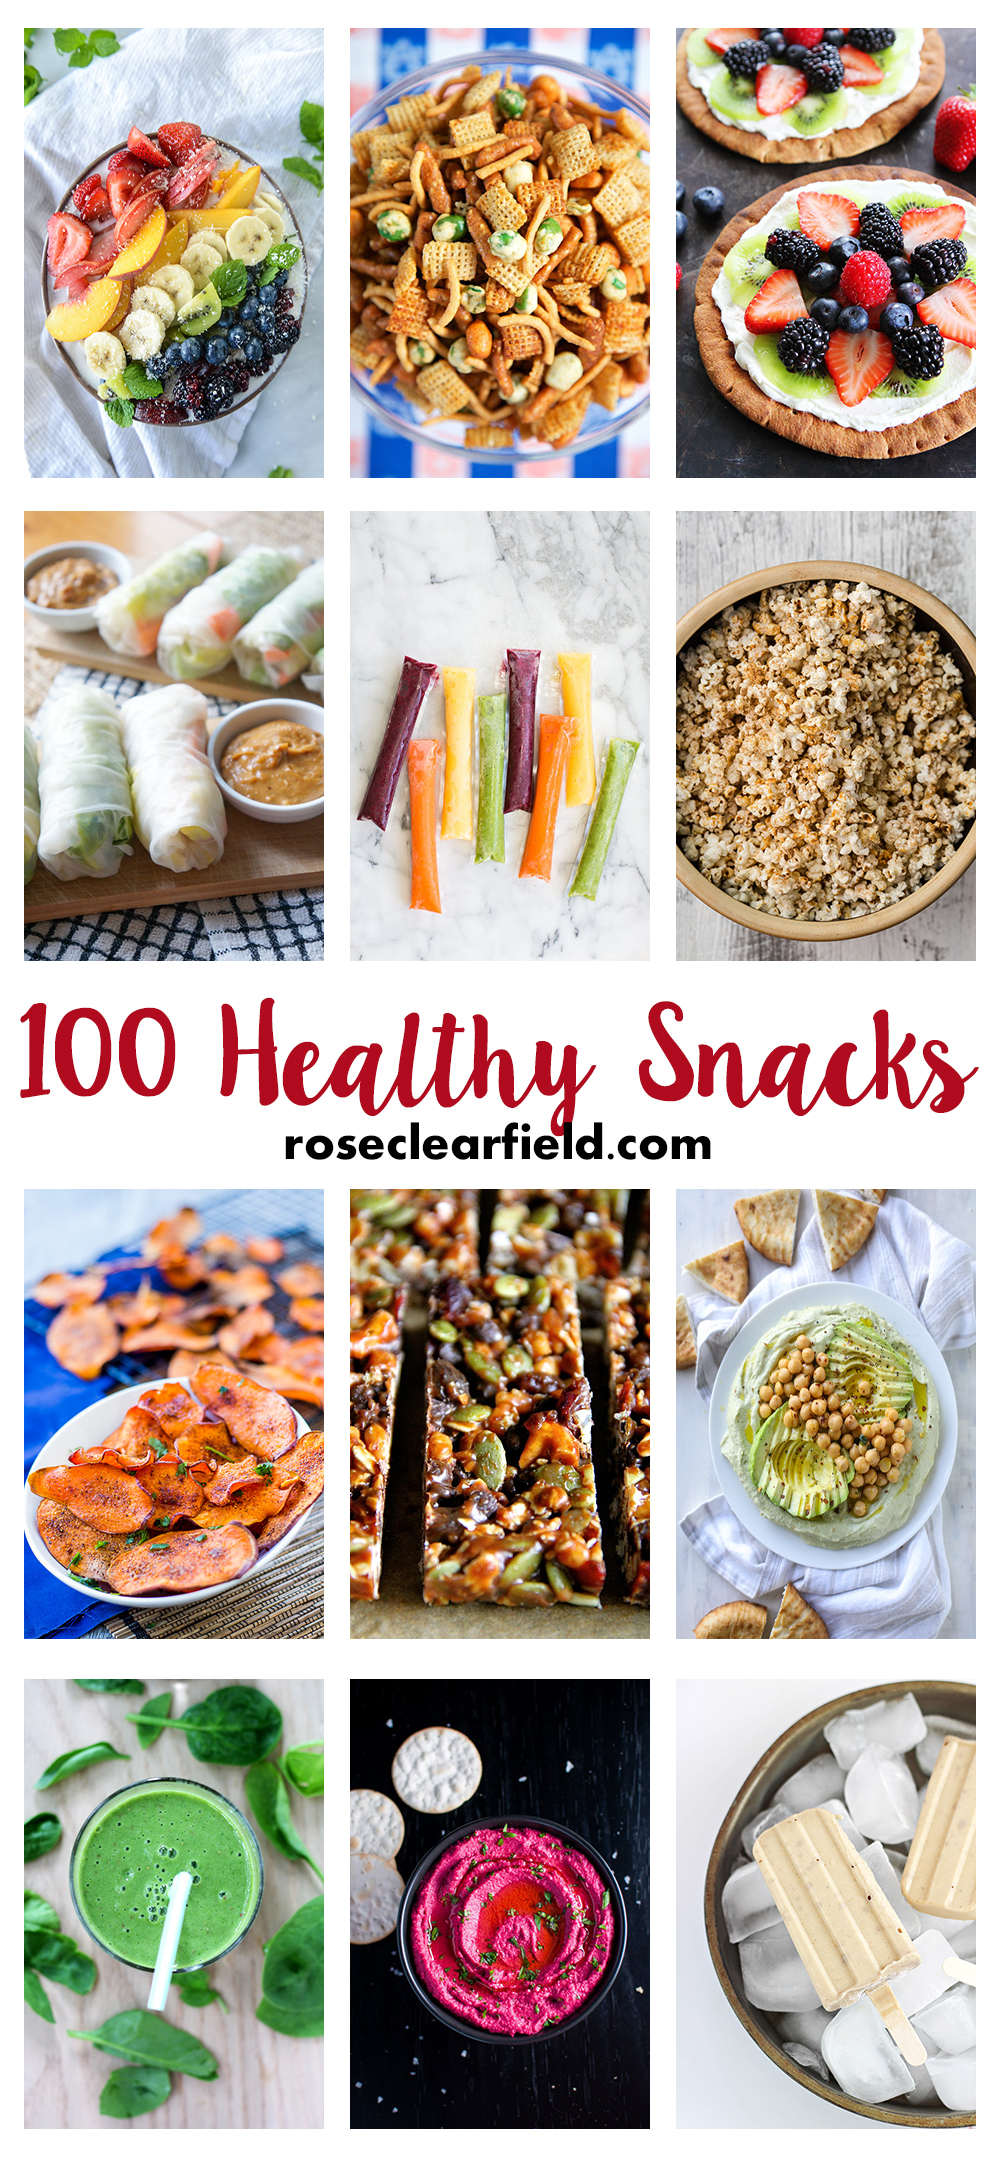 100 Healthy Snacks | https://www.roseclearfield.com